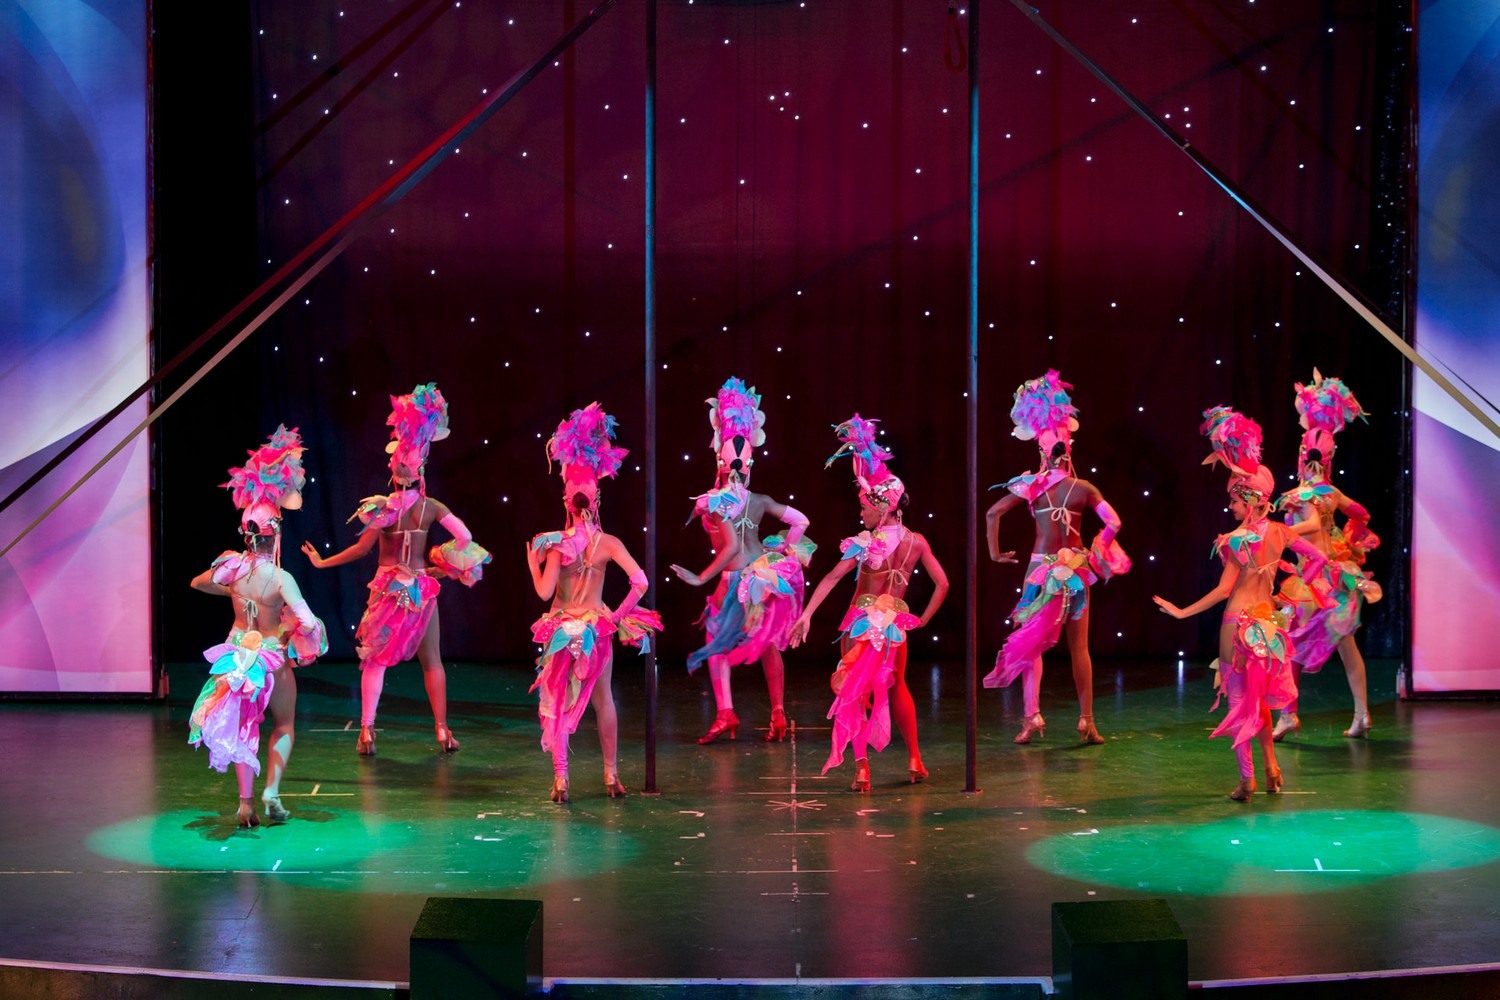 ic_hotels_green_palace_evening_show_36.jpg